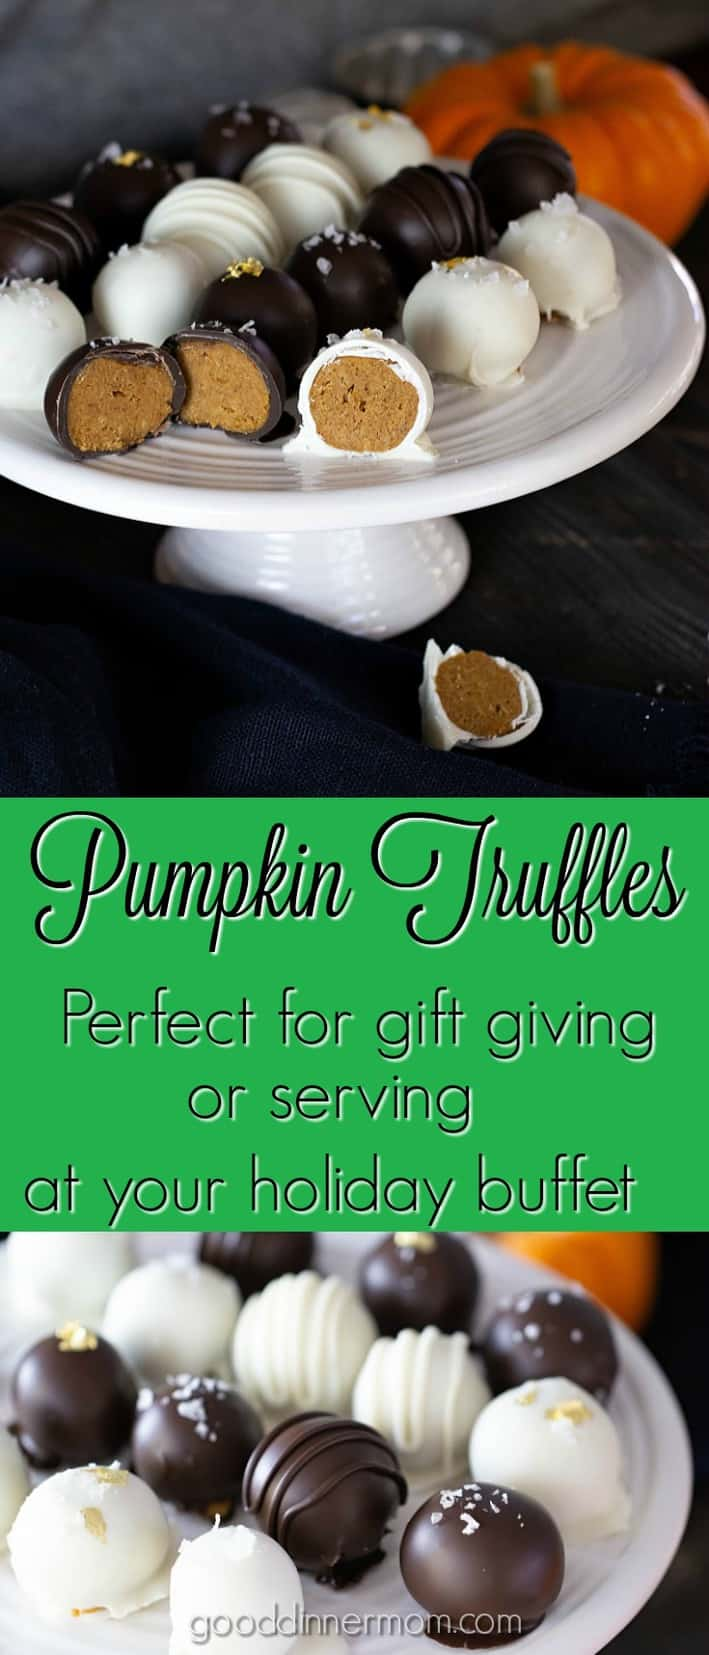 Pumpkin Truffles are easy but fancy. Will satisfy any chocolate and pumpkin pie craving. #pumpkinpie #truffles